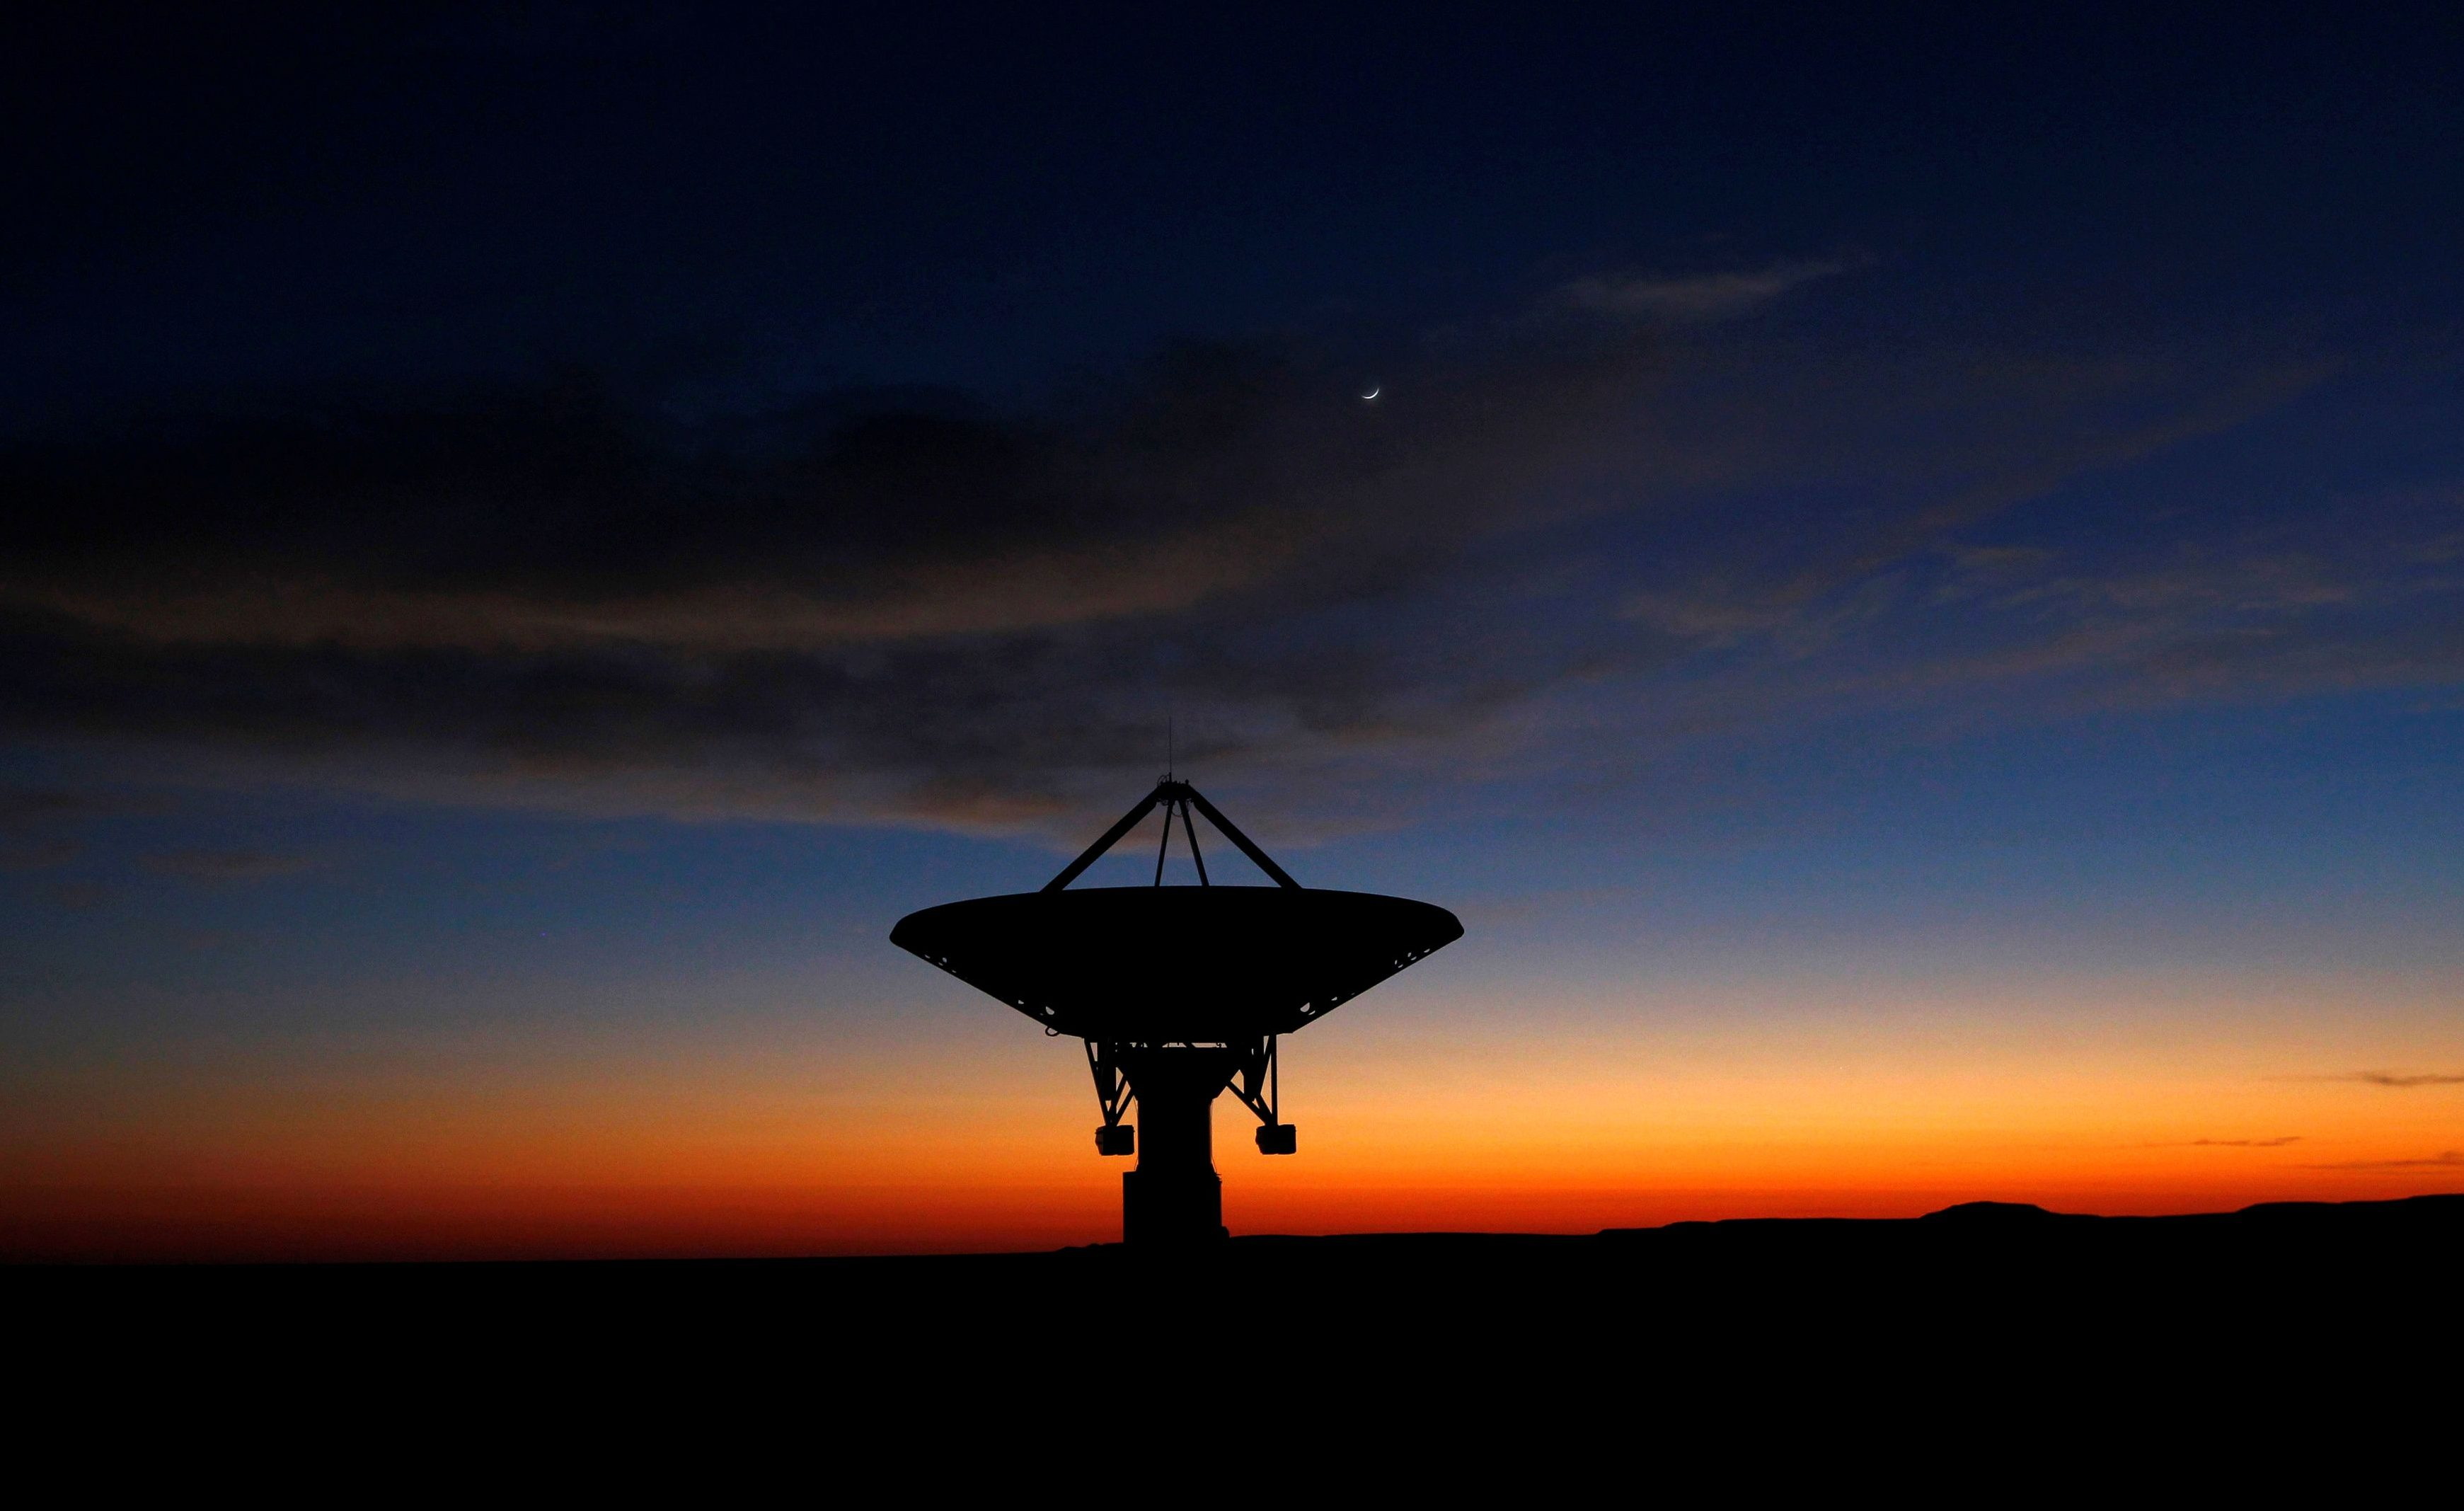 FILE PHOTO: Dawn breaks over a radio telescope dish of the KAT-7 Array pointing skyward at the proposed South African site for the Square Kilometre Array (SKA) telescope near Carnavon in the country's remote Northern Cape province